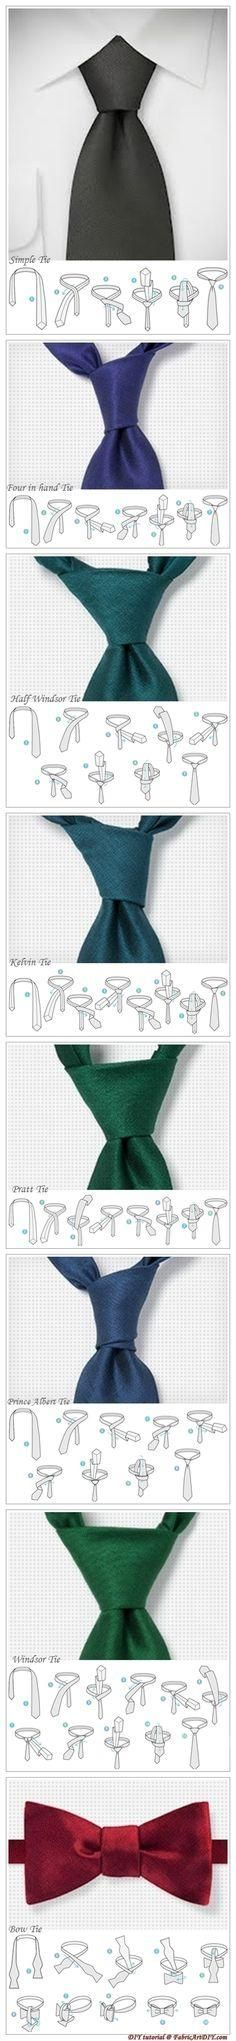 Classic tie knot instructions - m preach Gentleman Mode, Gentleman Style, Mode Masculine, Style Masculin, Suit And Tie, Mode Inspiration, Dress Codes, Mens Suits, Style Guides